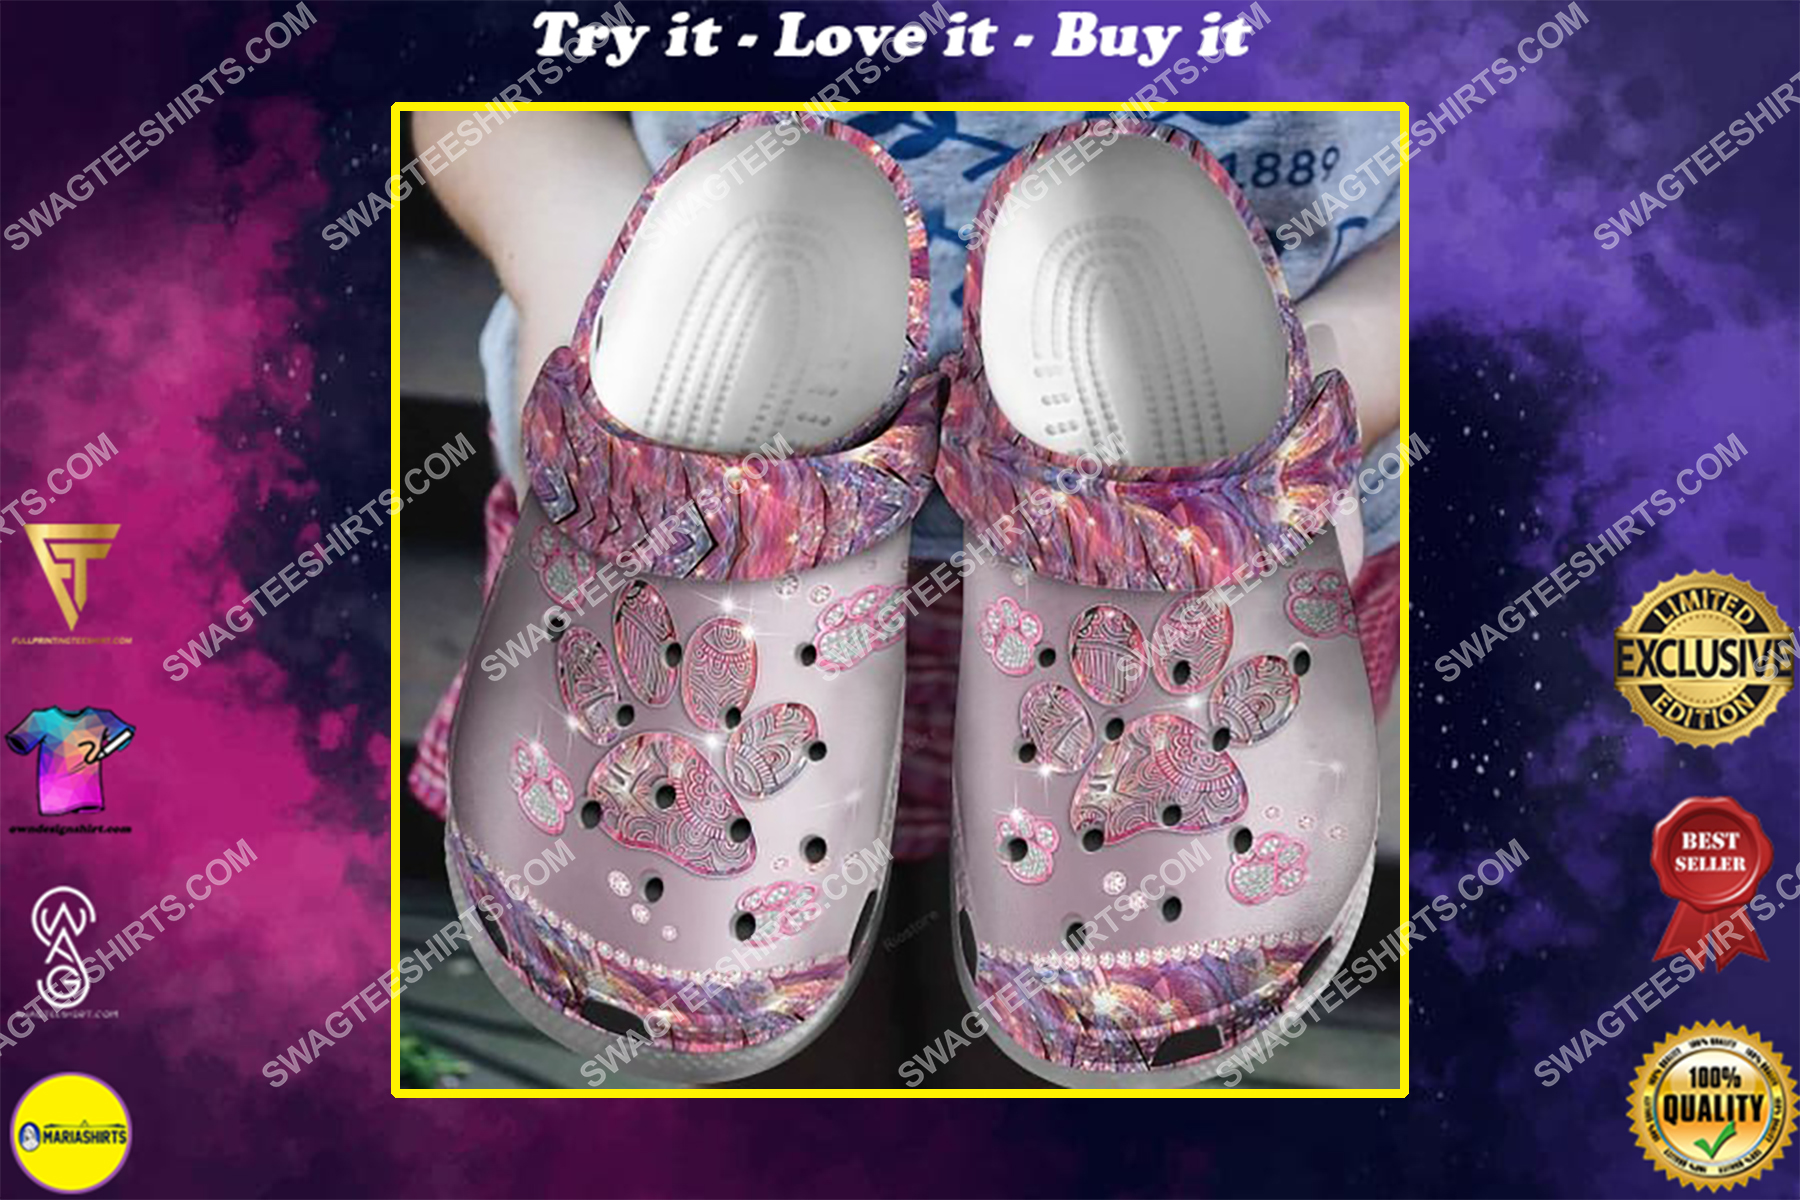 the paws glitter all over printed crocs crocband clog